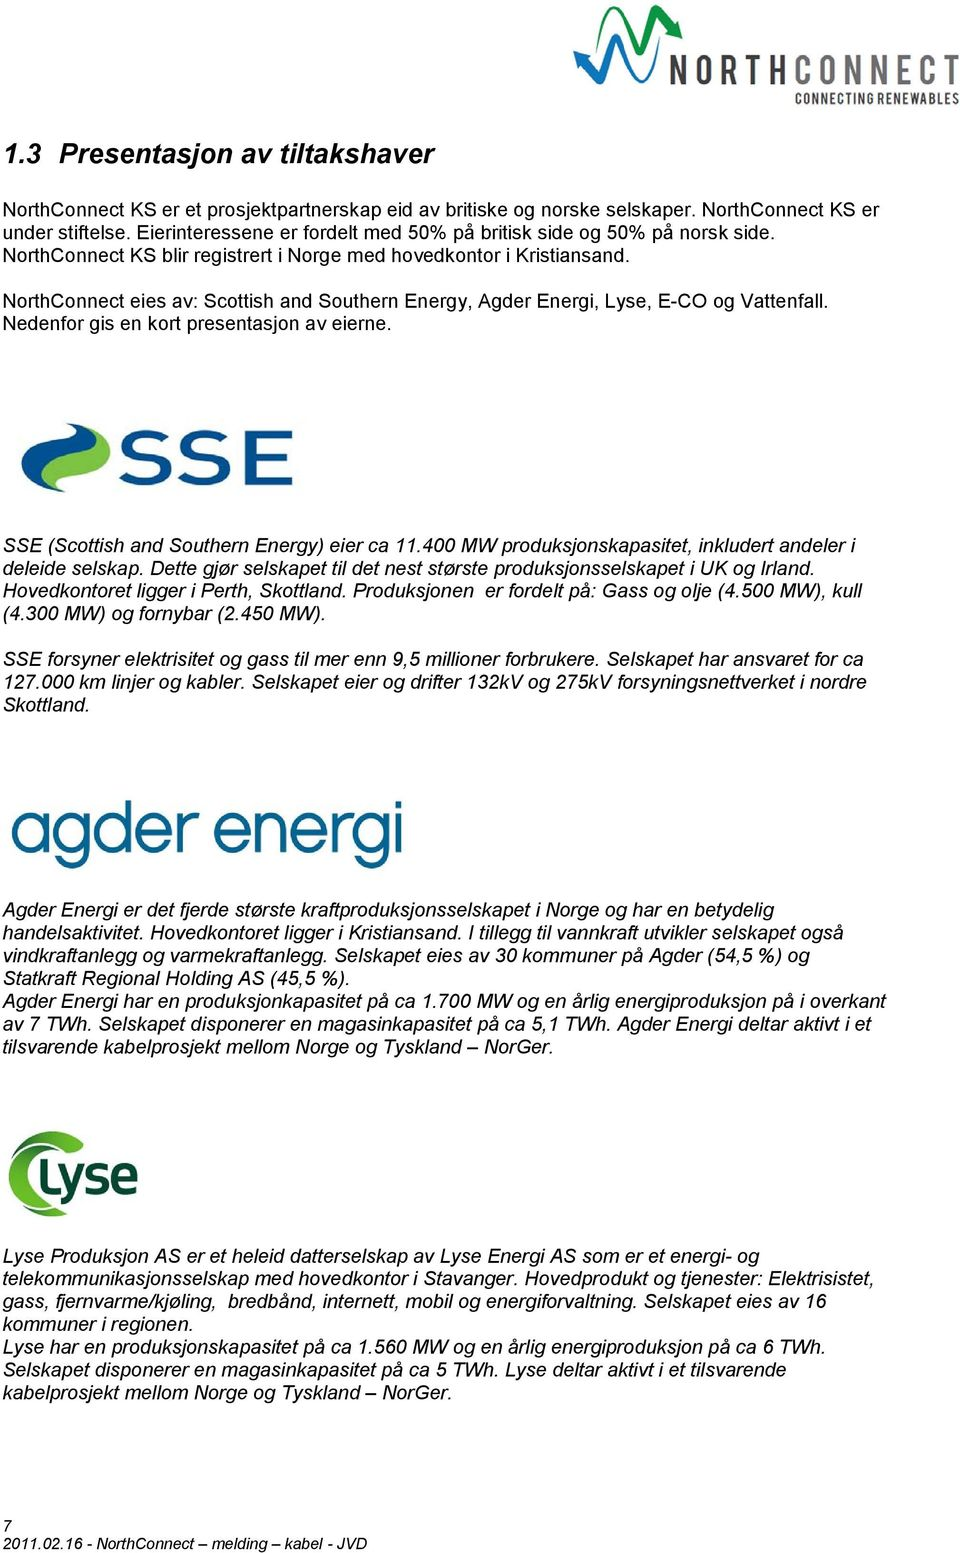 NorthConnect eies av: Scottish and Southern Energy, Agder Energi, Lyse, E-CO og Vattenfall. Nedenfor gis en kort presentasjon av eierne. SSE (Scottish and Southern Energy) eier ca 11.